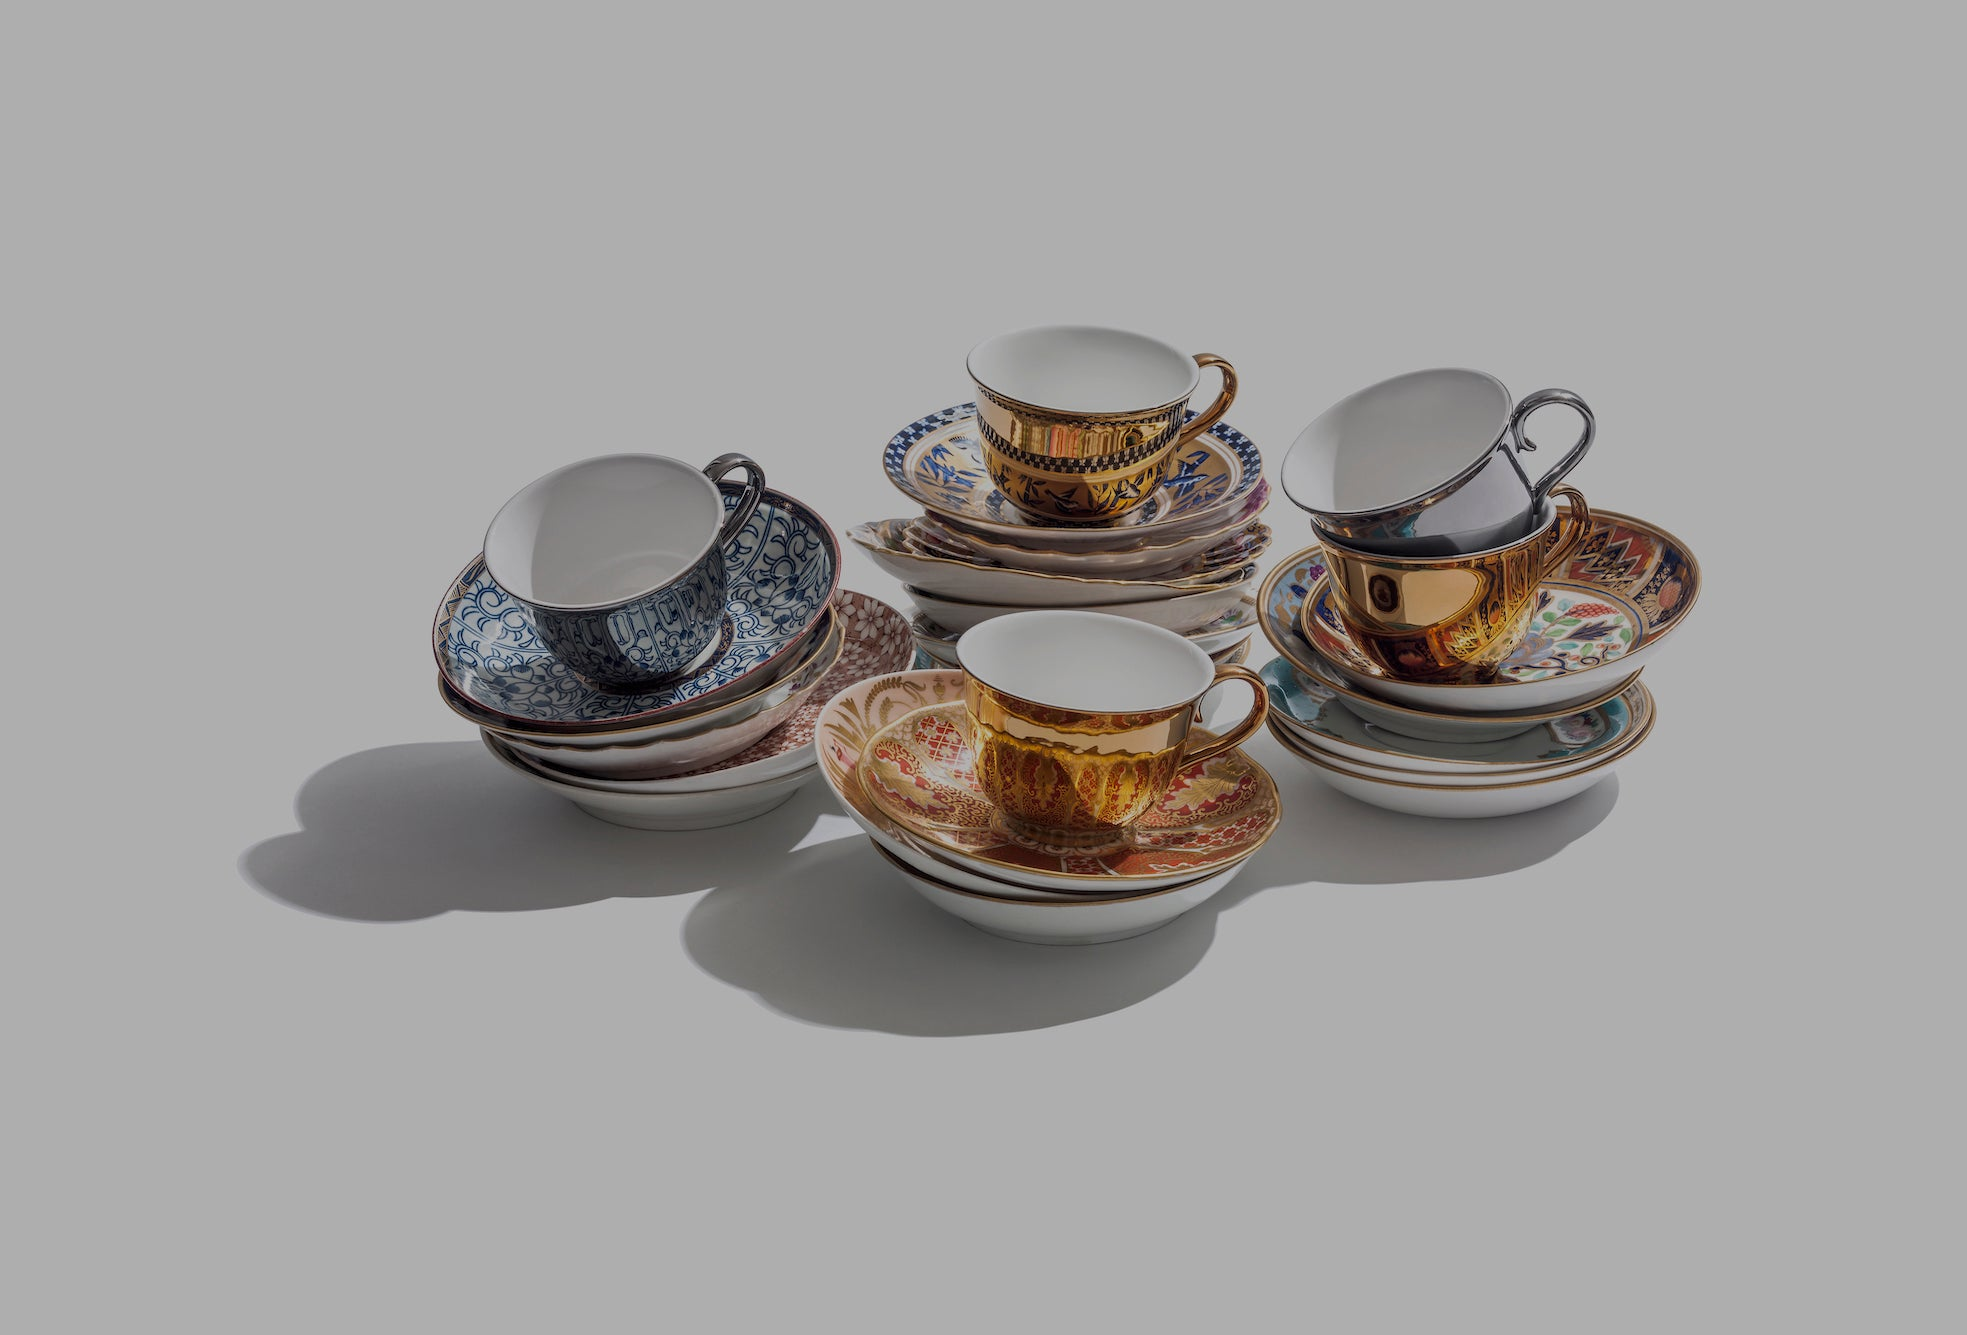 Richard on the Reflect Collection: Portobello Road, Orphaned Saucers and Breathing new life into Antiques